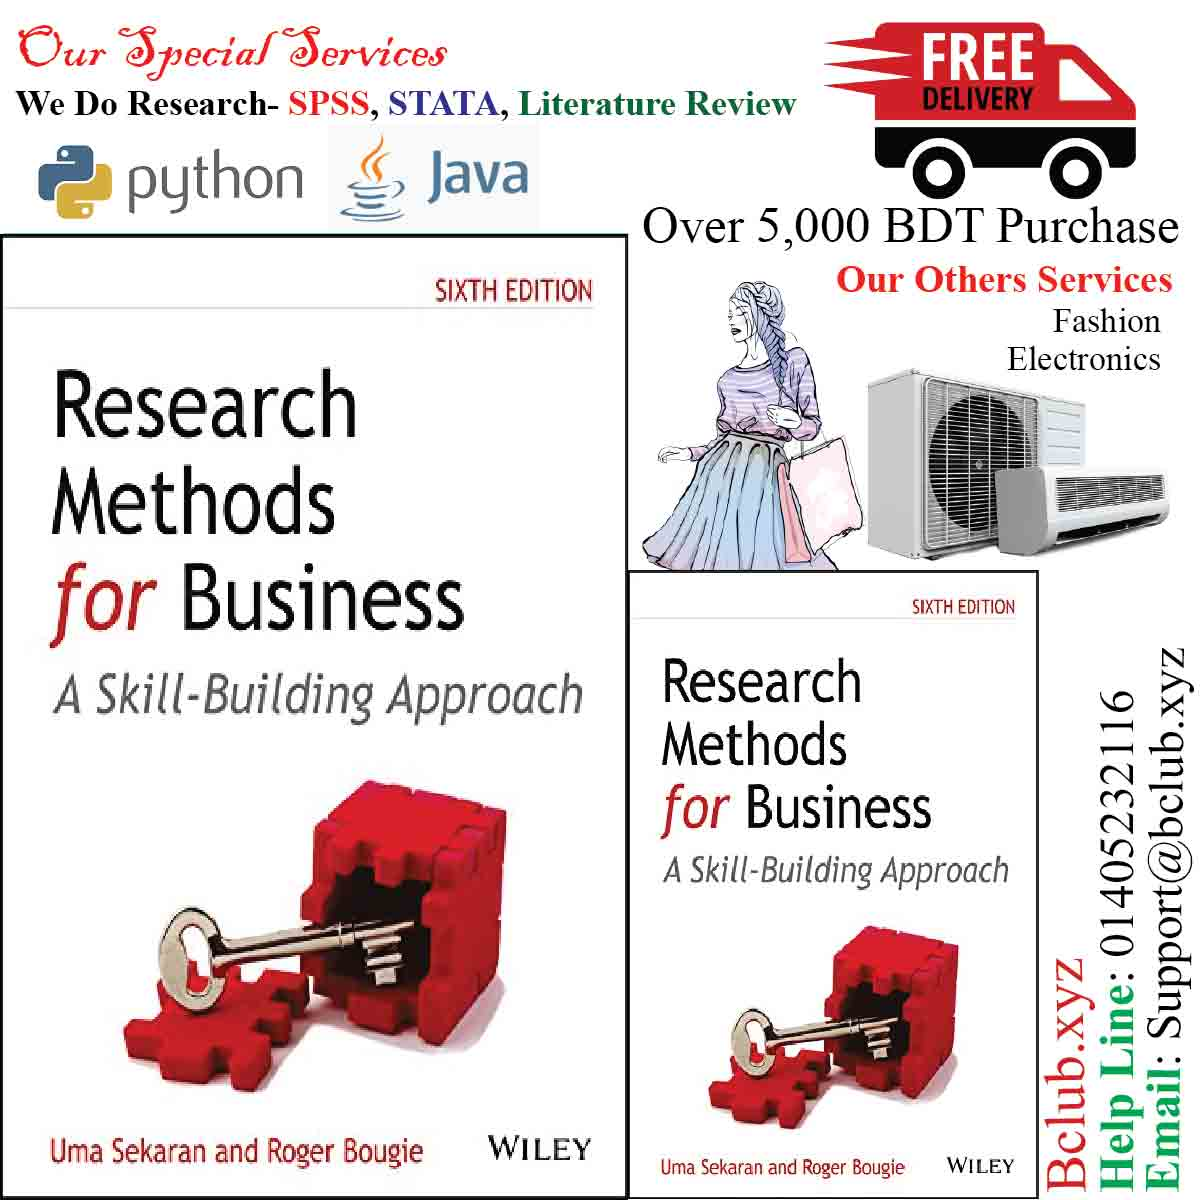 Research Methods for Business: A Skill-Building Approach, 6ed by Uma Sekaran ), Roger Bougie